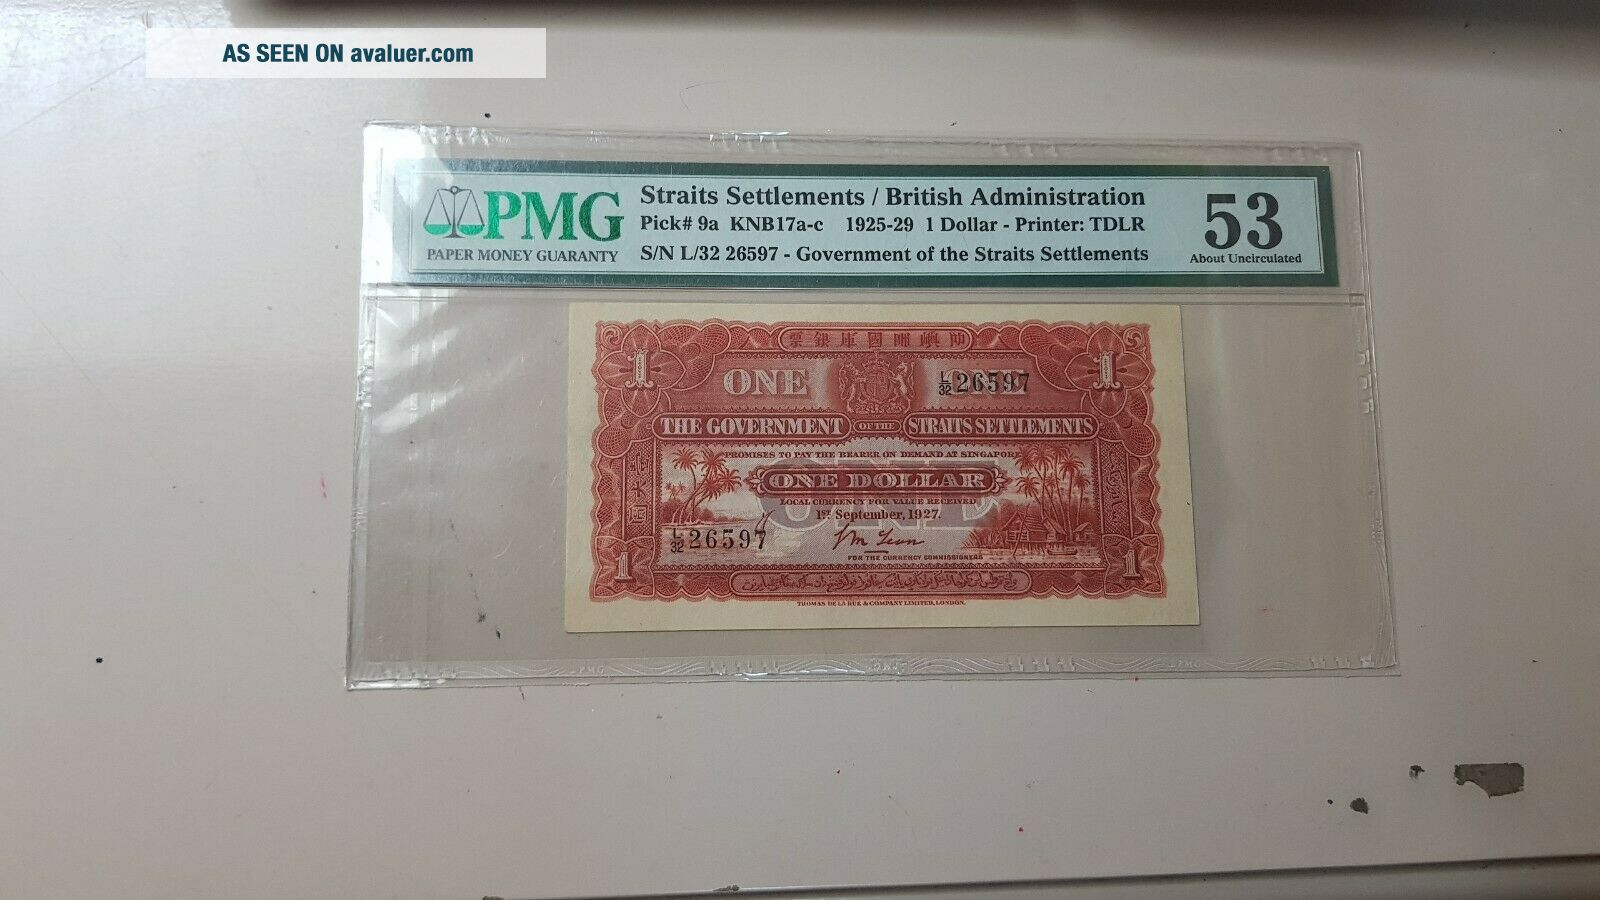 STRAITS SETTLEMENTS 1 DOLLAR 1927 PMG53 RARE KEYDATE WITH HIGH SCORE